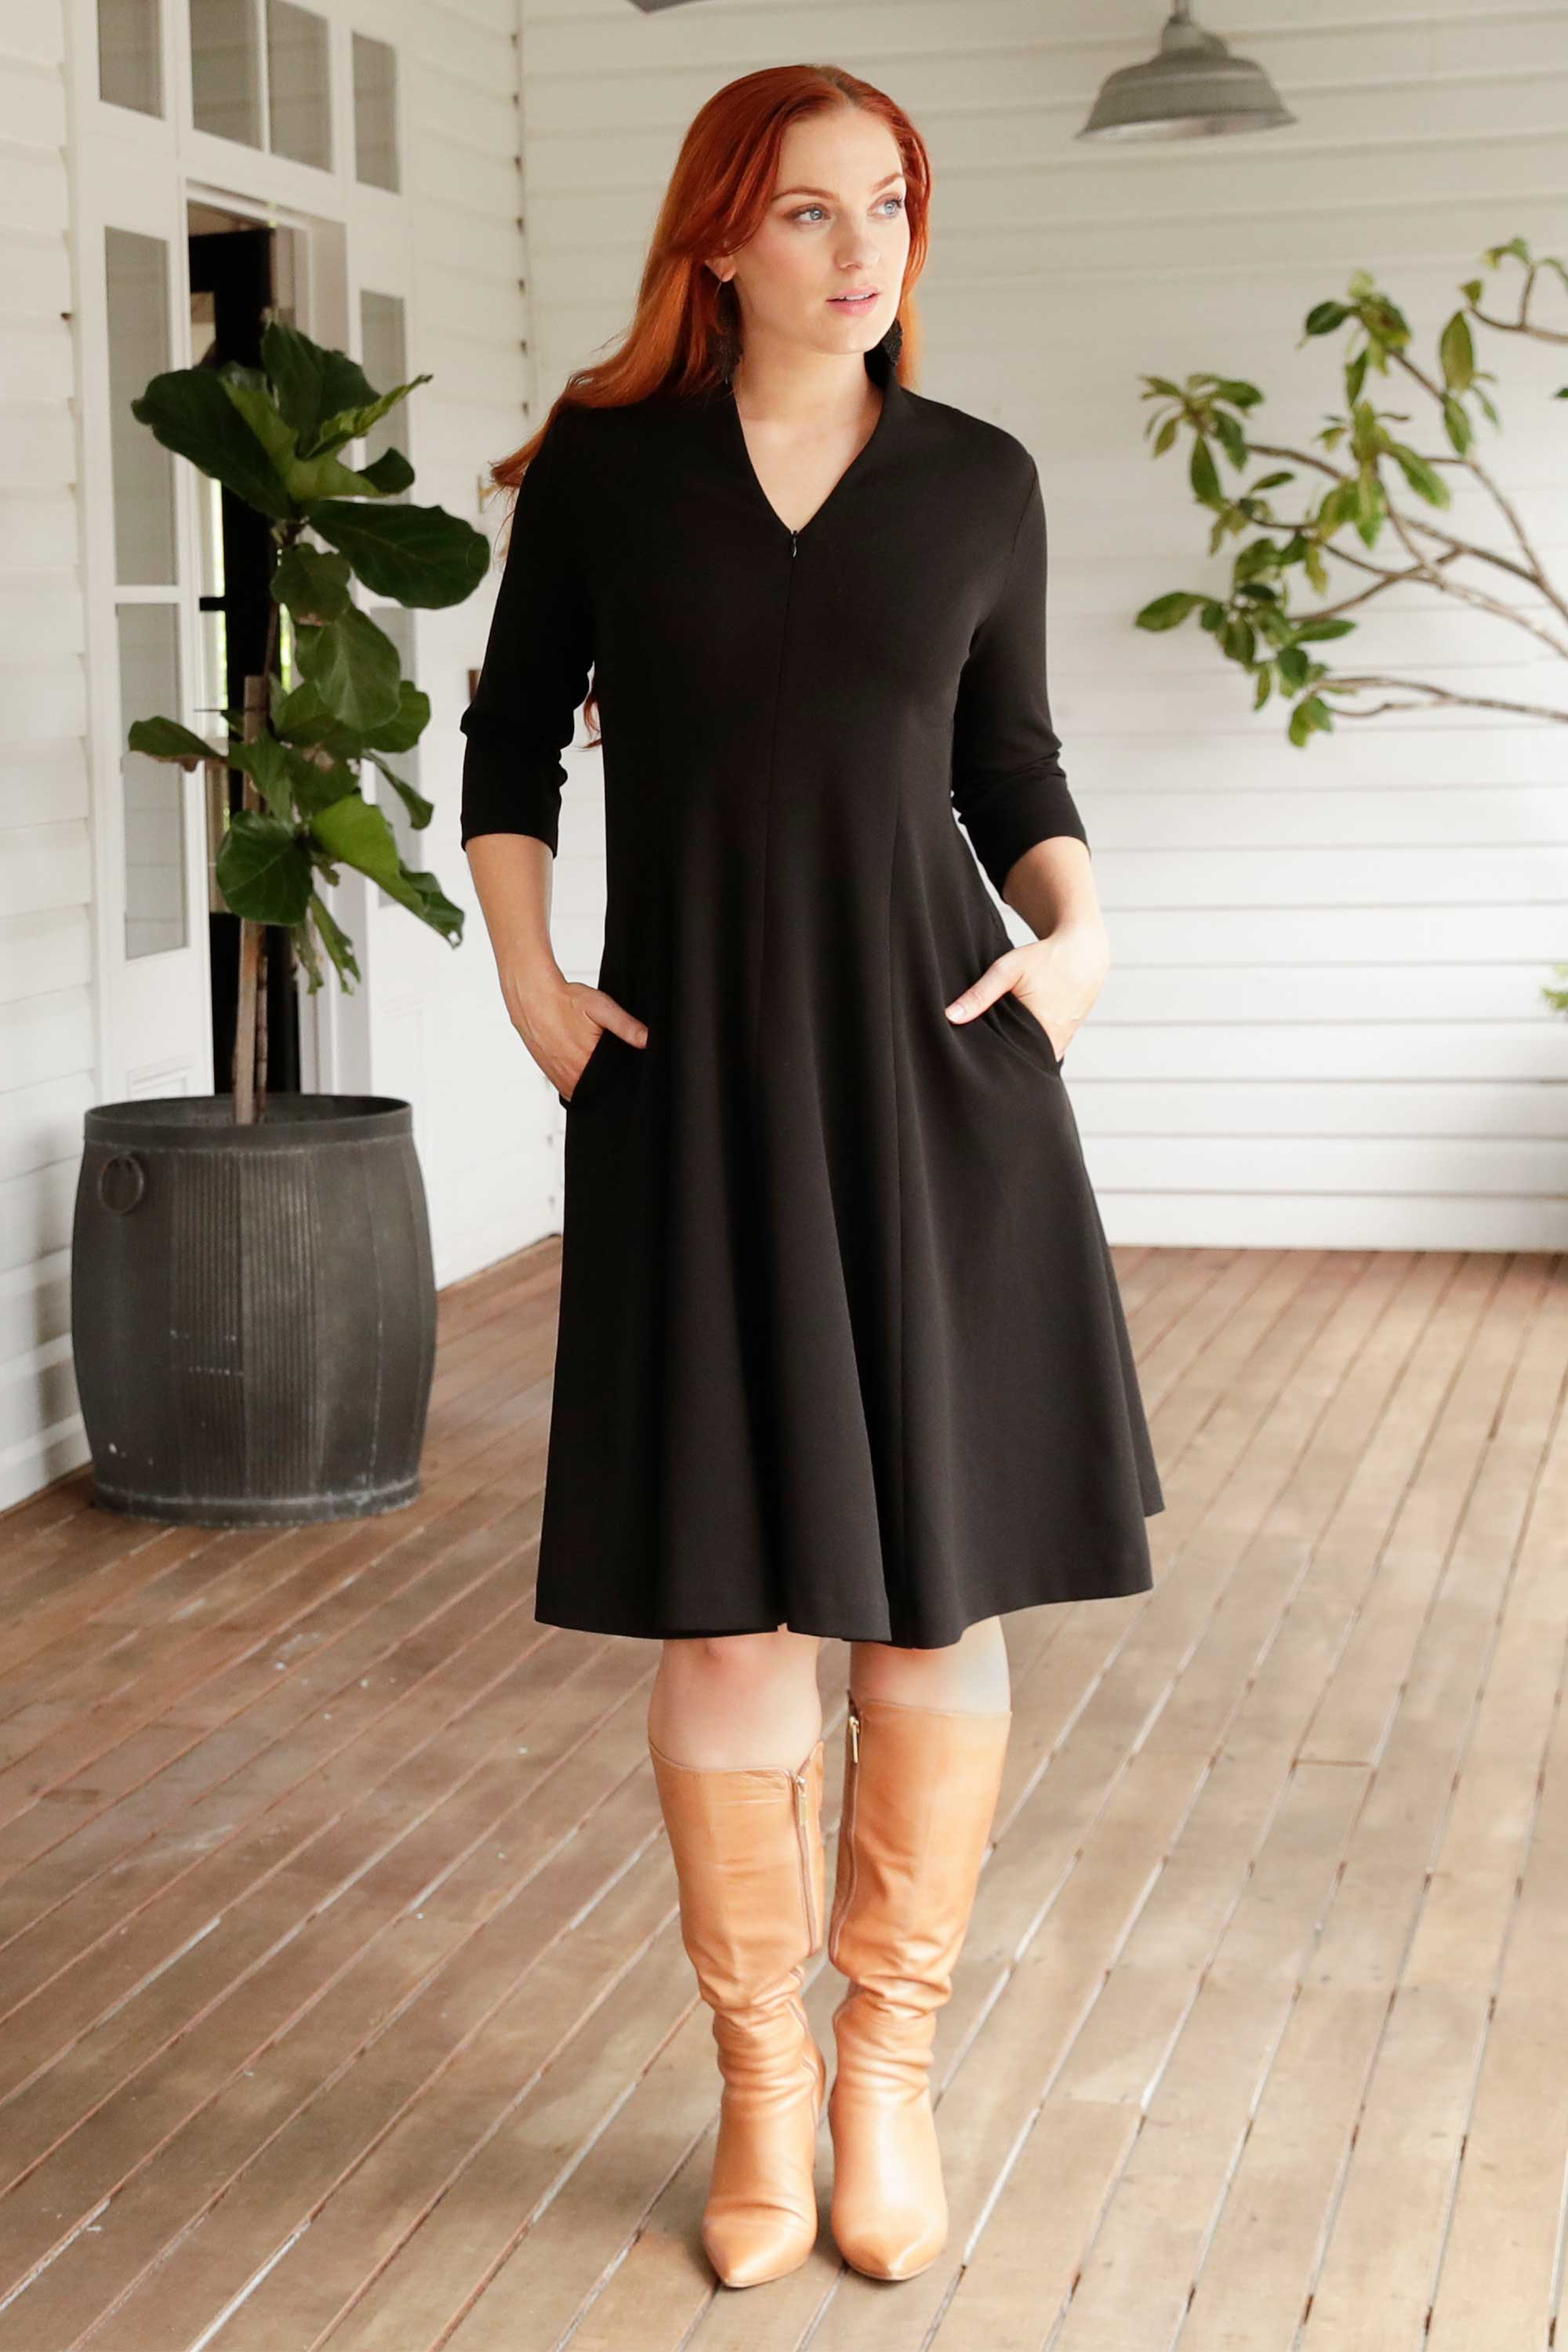 Leina & Fleur have Designed the Clara Dress in Dress for the Professional Woman. Comfortable and Stylish Dress for Work. Leina & Fleur are Proudly Australian Made and Carry Sizes 8 to 24.